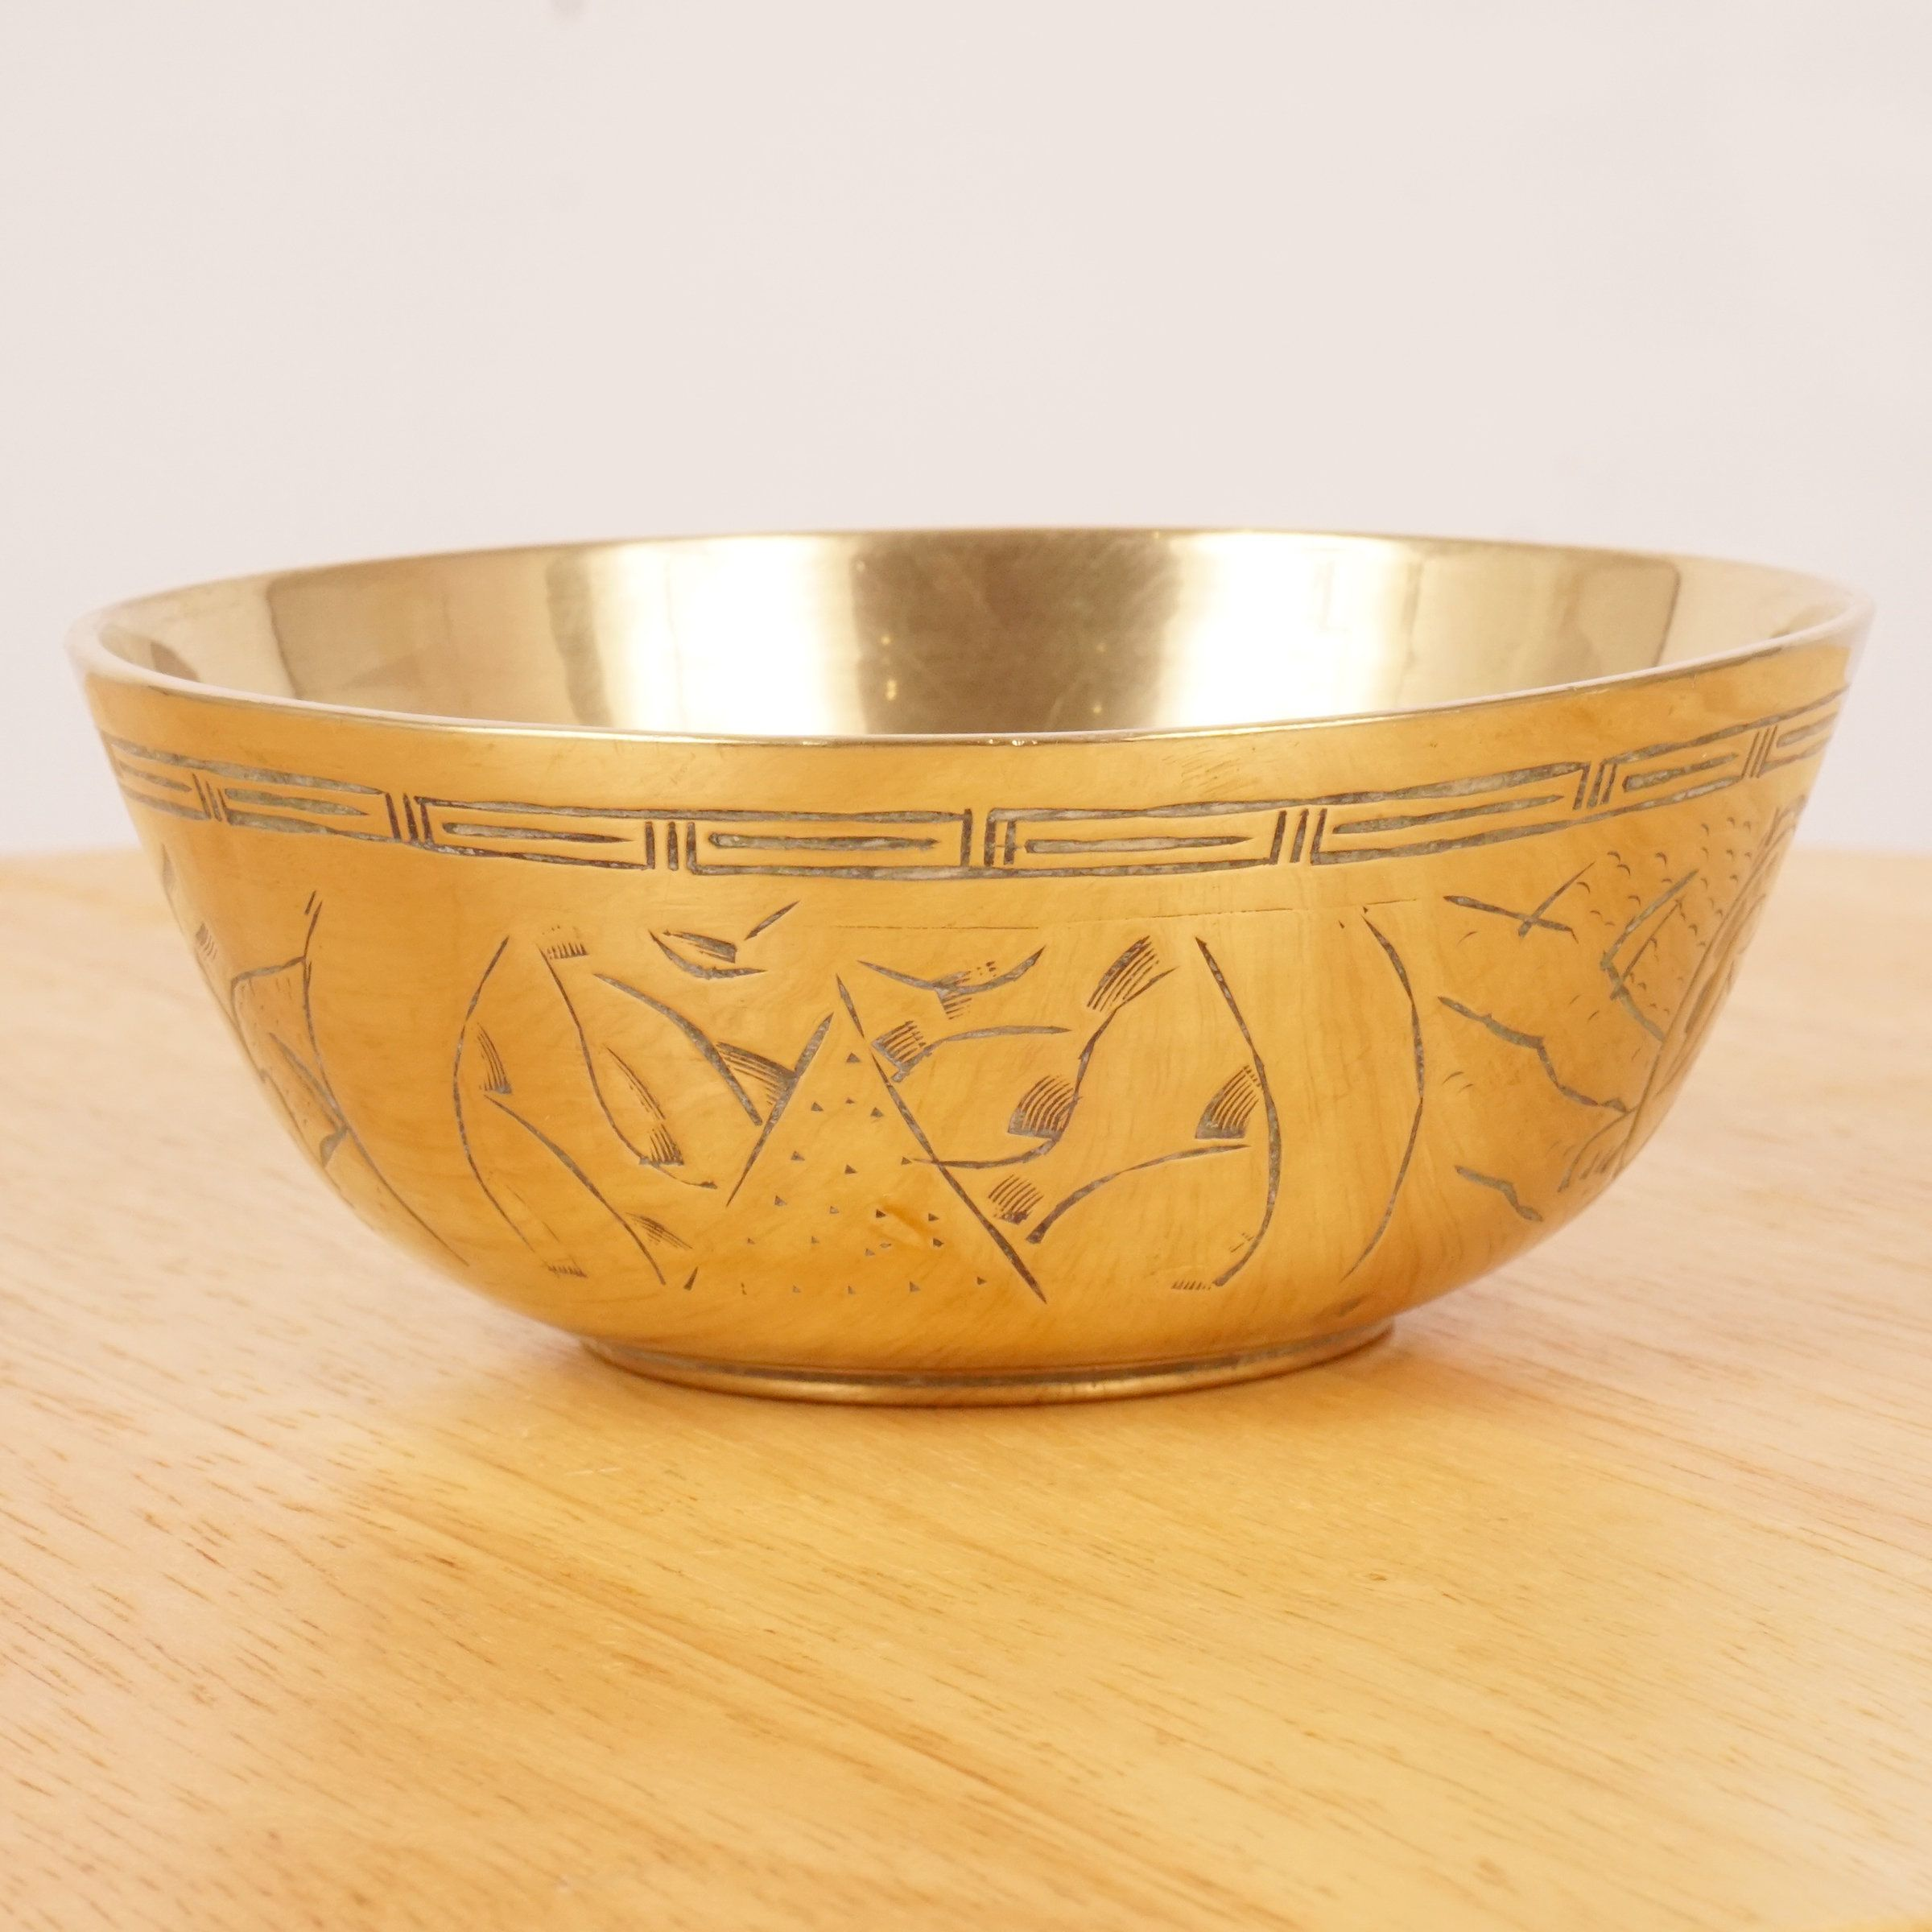 Bowl Dish Vintage Solid Brass Made In China Dragon Bowl In 2020 Dragon Bowl Bowl Vintage